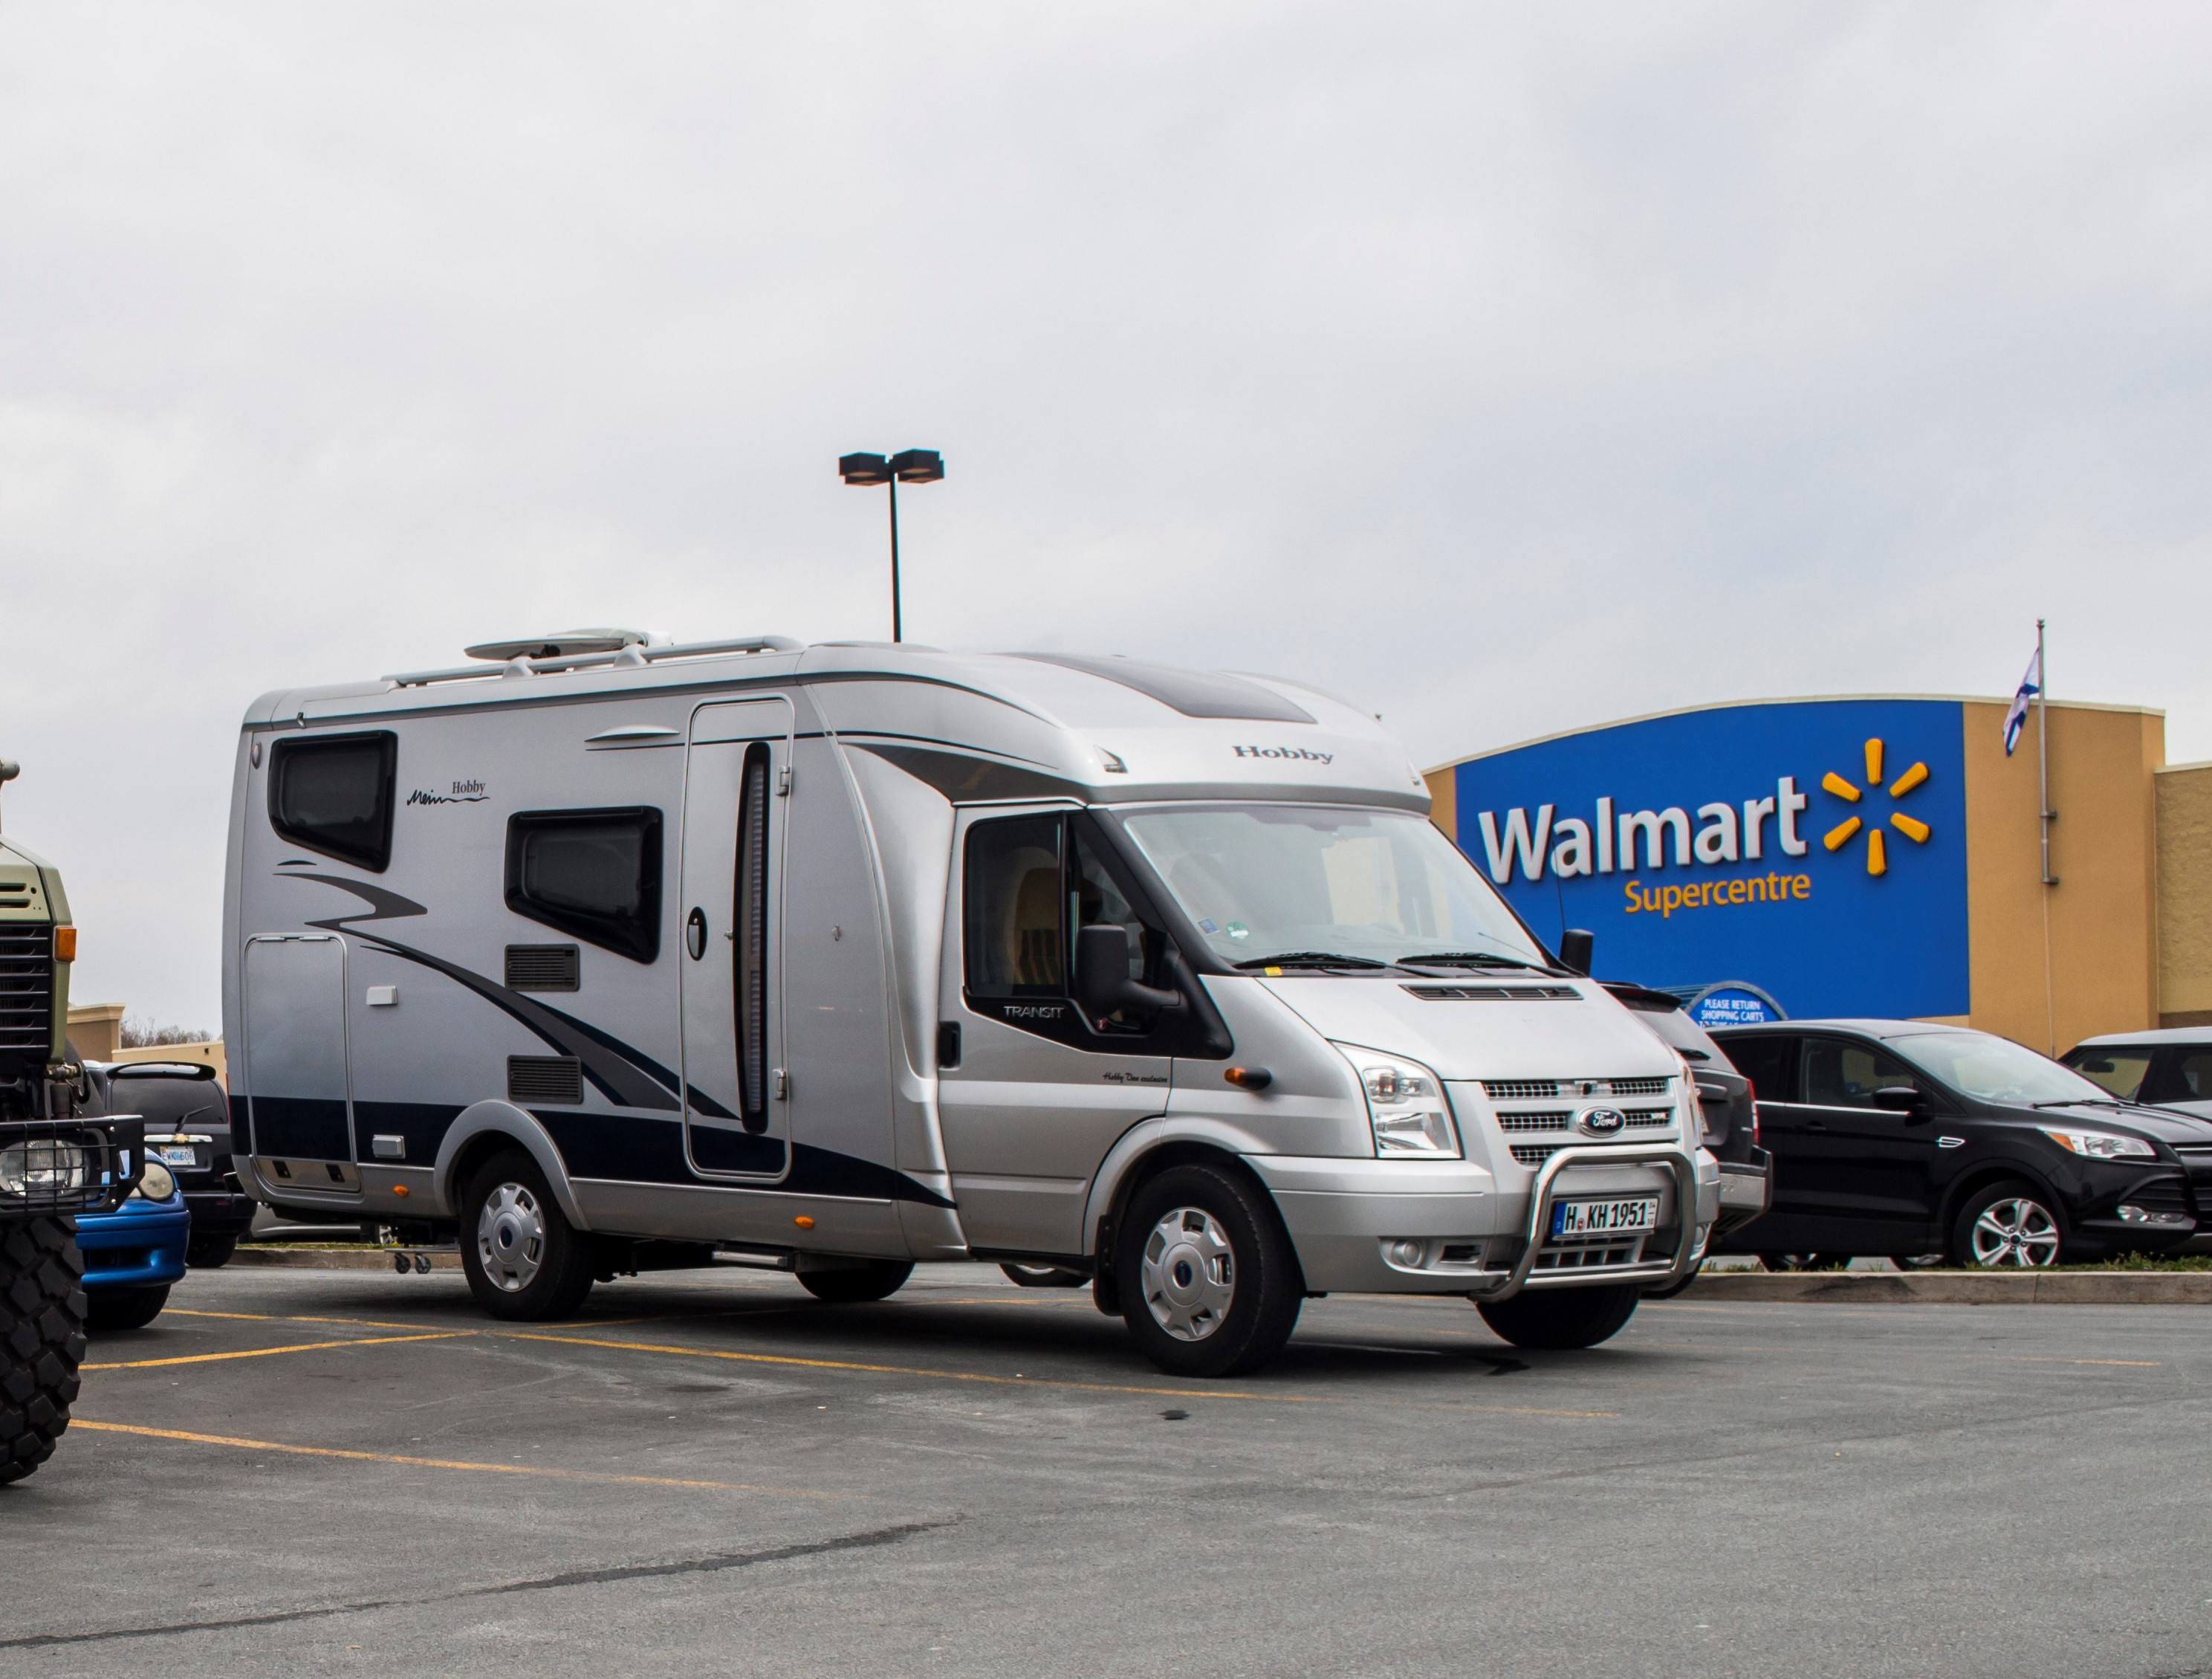 California beach camping with rv hookups at walmart